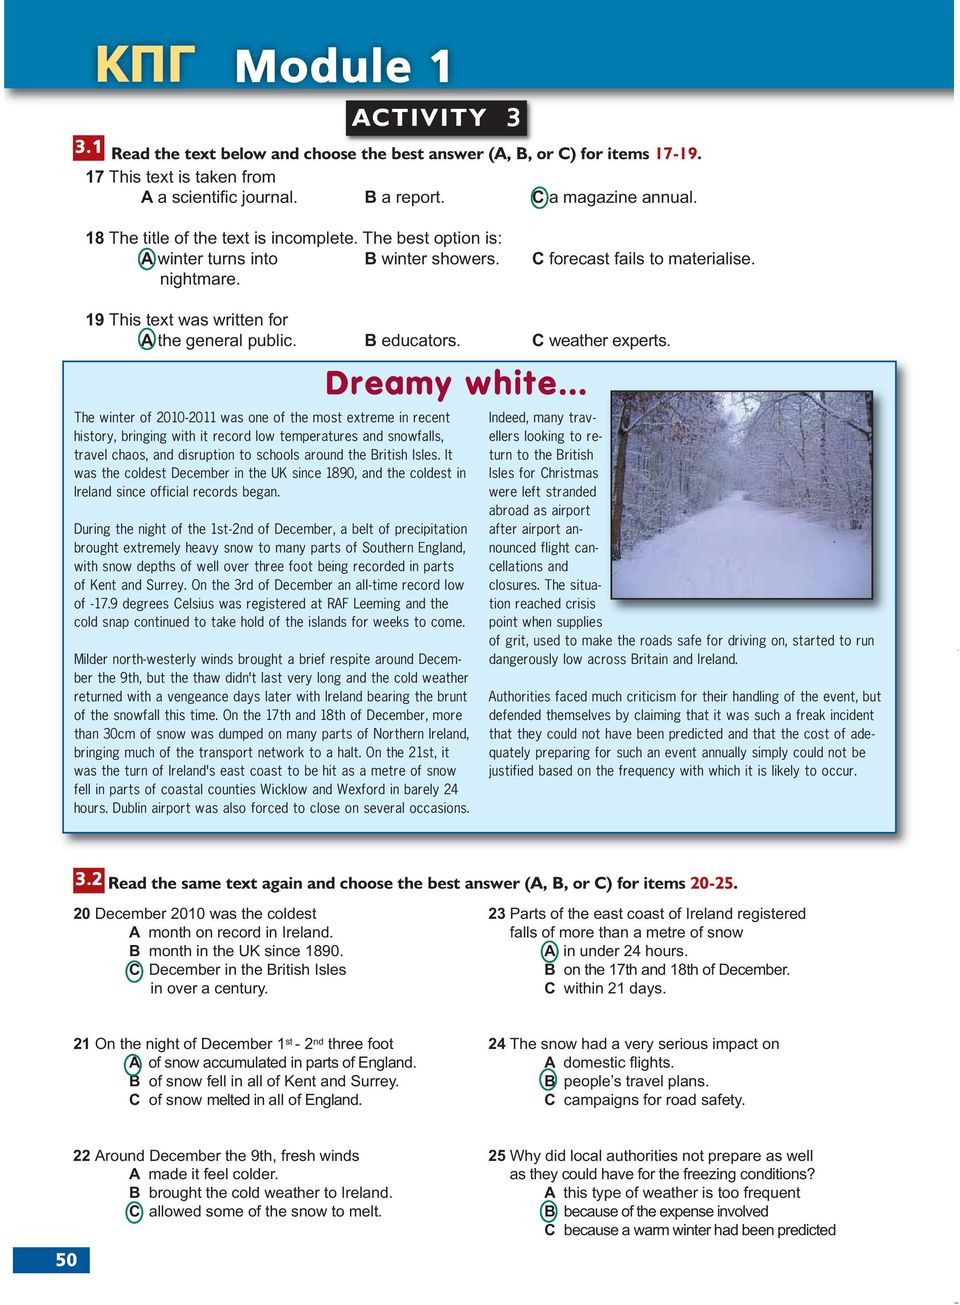 B educators. C weather experts. Dreamy white.